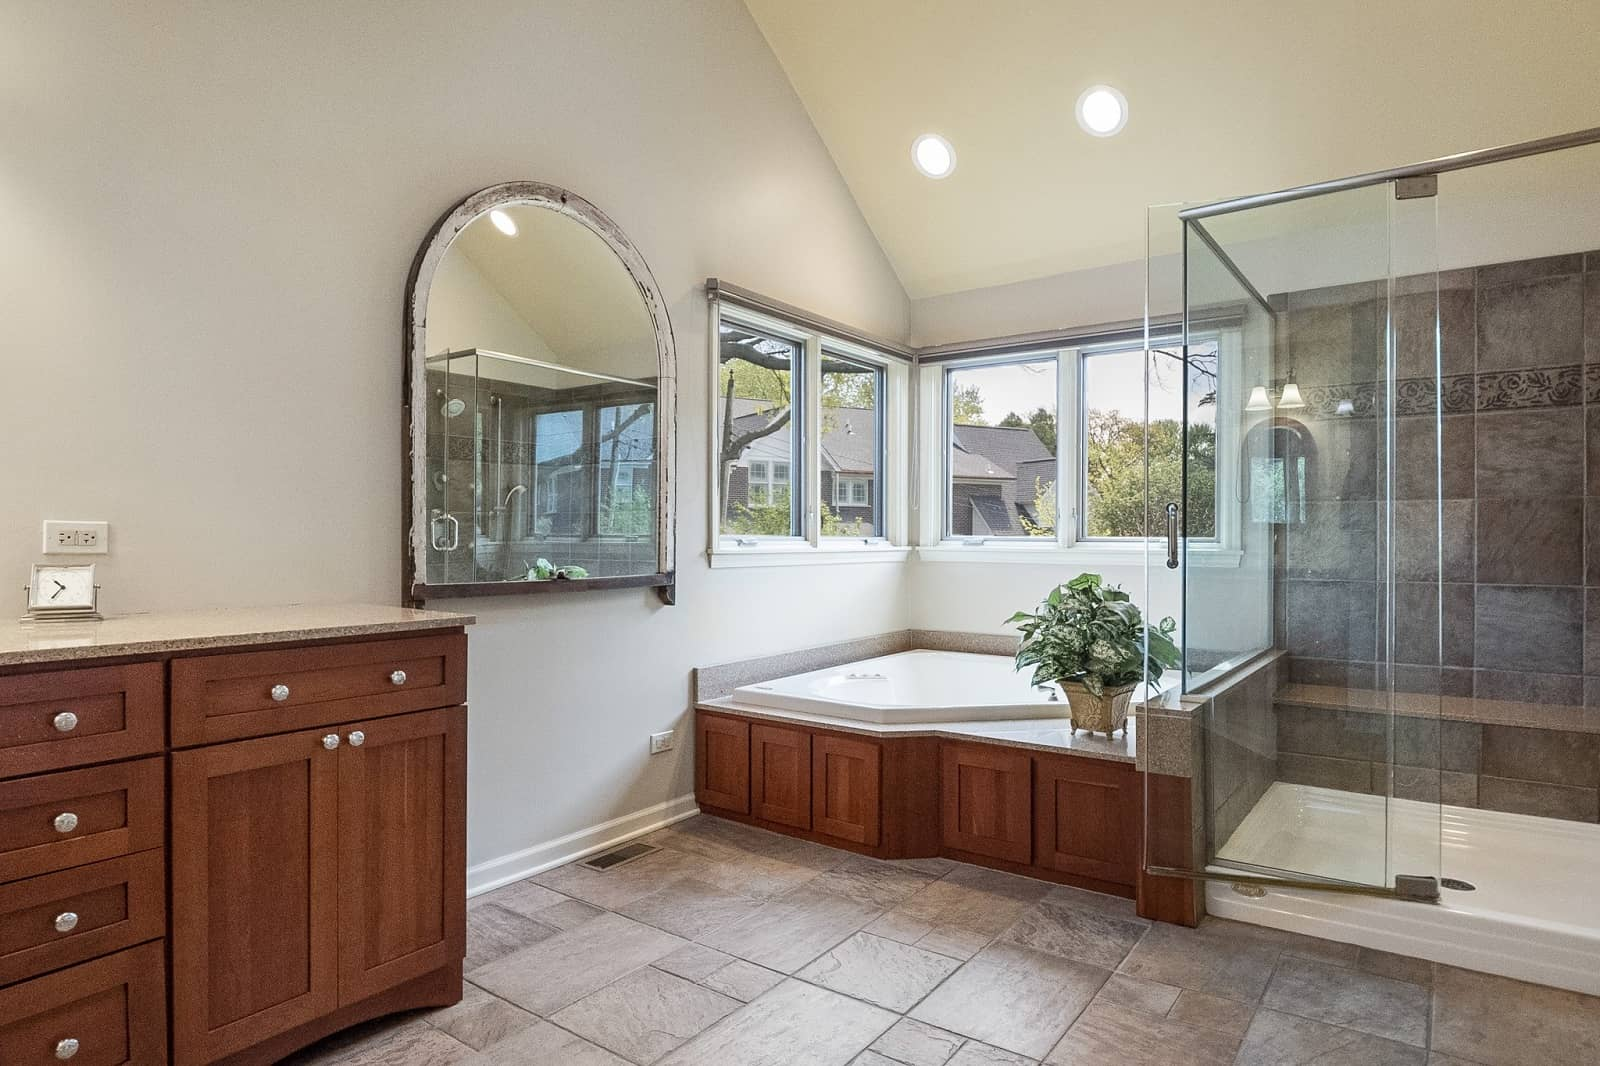 Real Estate Photography in Naperville - IL - USA - Bathroom View